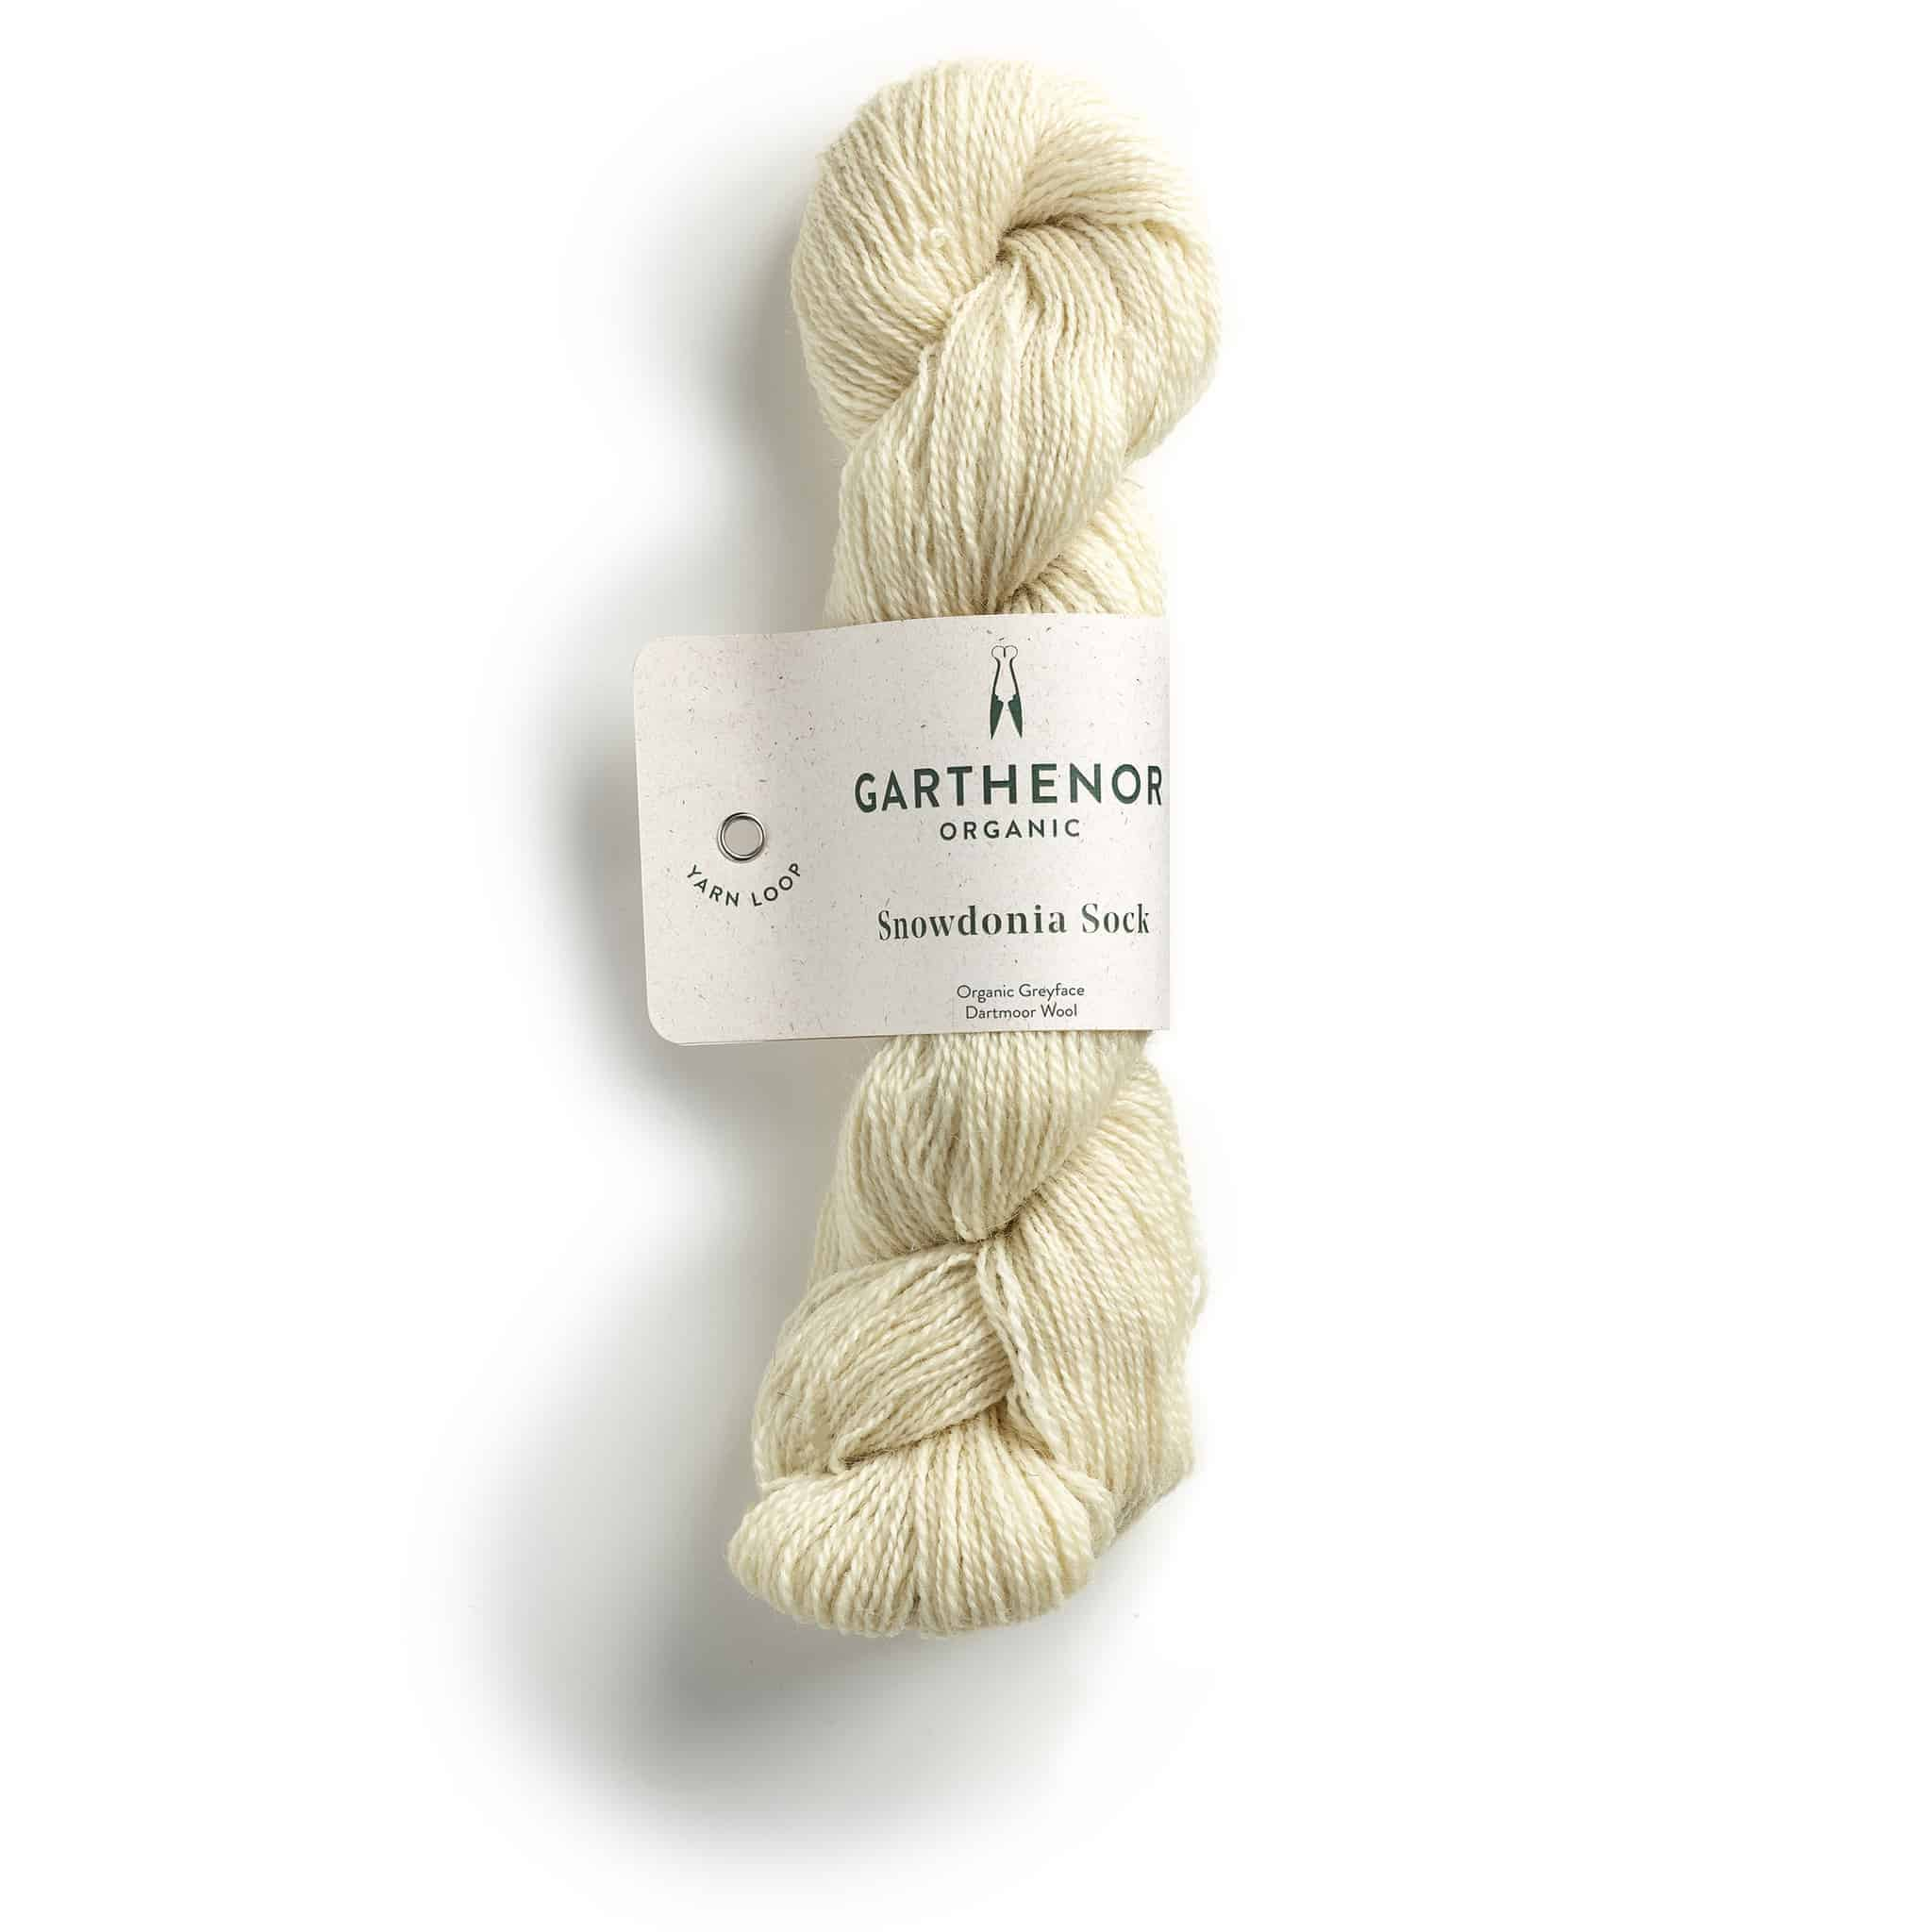 A skein of cream-colored yarn that says Dartmoor.